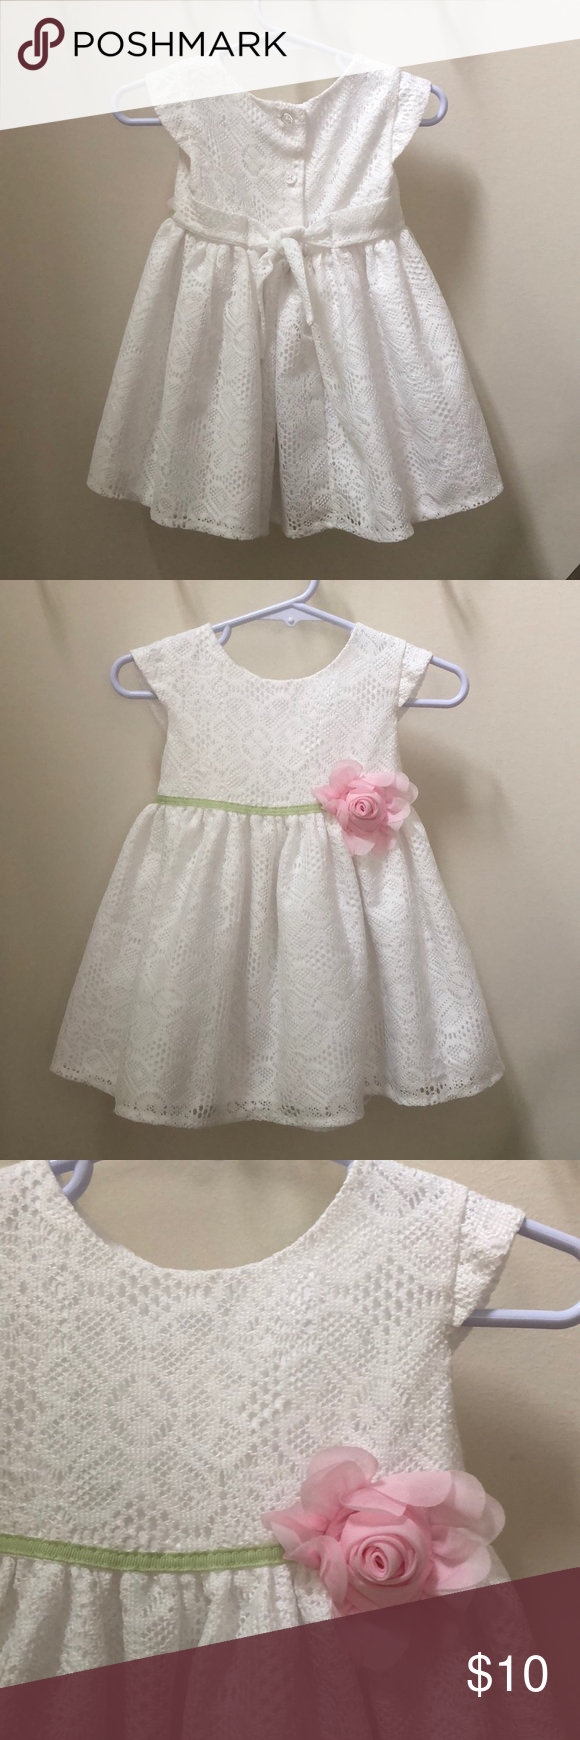 George White Lace Dress 12 Months George 12 Month White Lace Dress With Decorative Green Ribbon And Pink Flower Lace La Lace White Dress Lace Dress Dresses [ 1740 x 580 Pixel ]